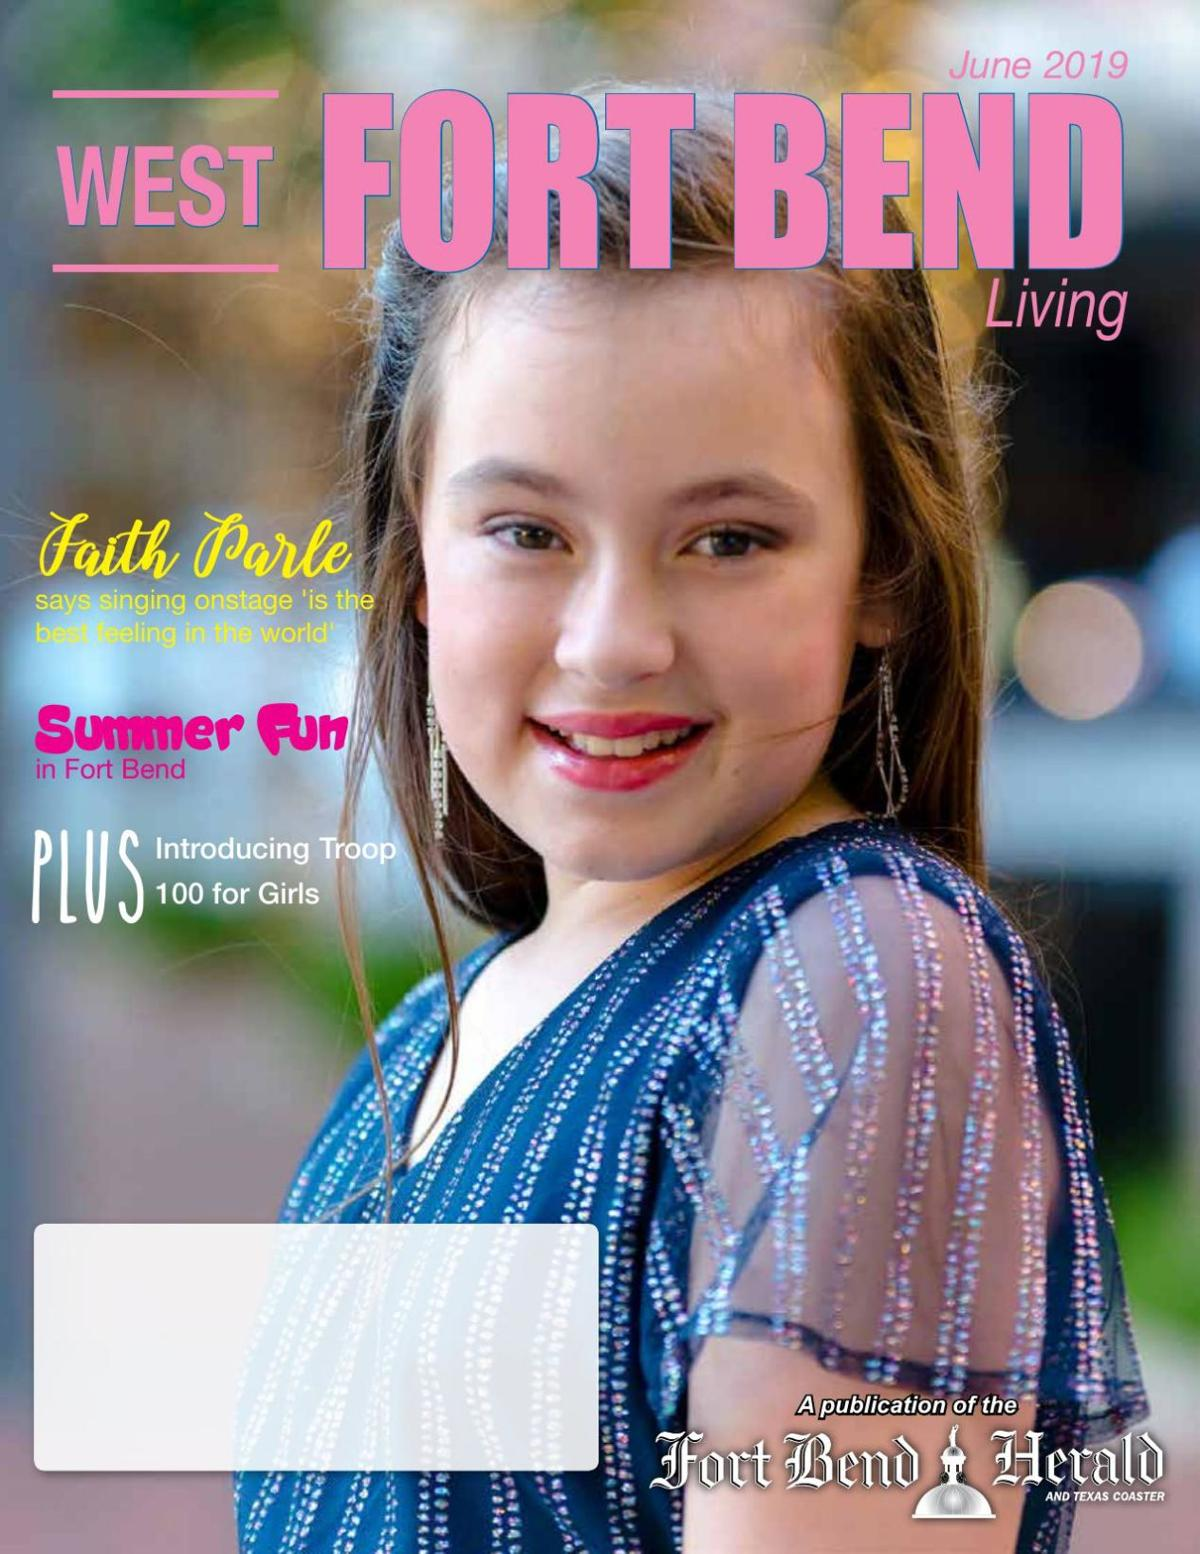 West Fort Bend Living: June 2019